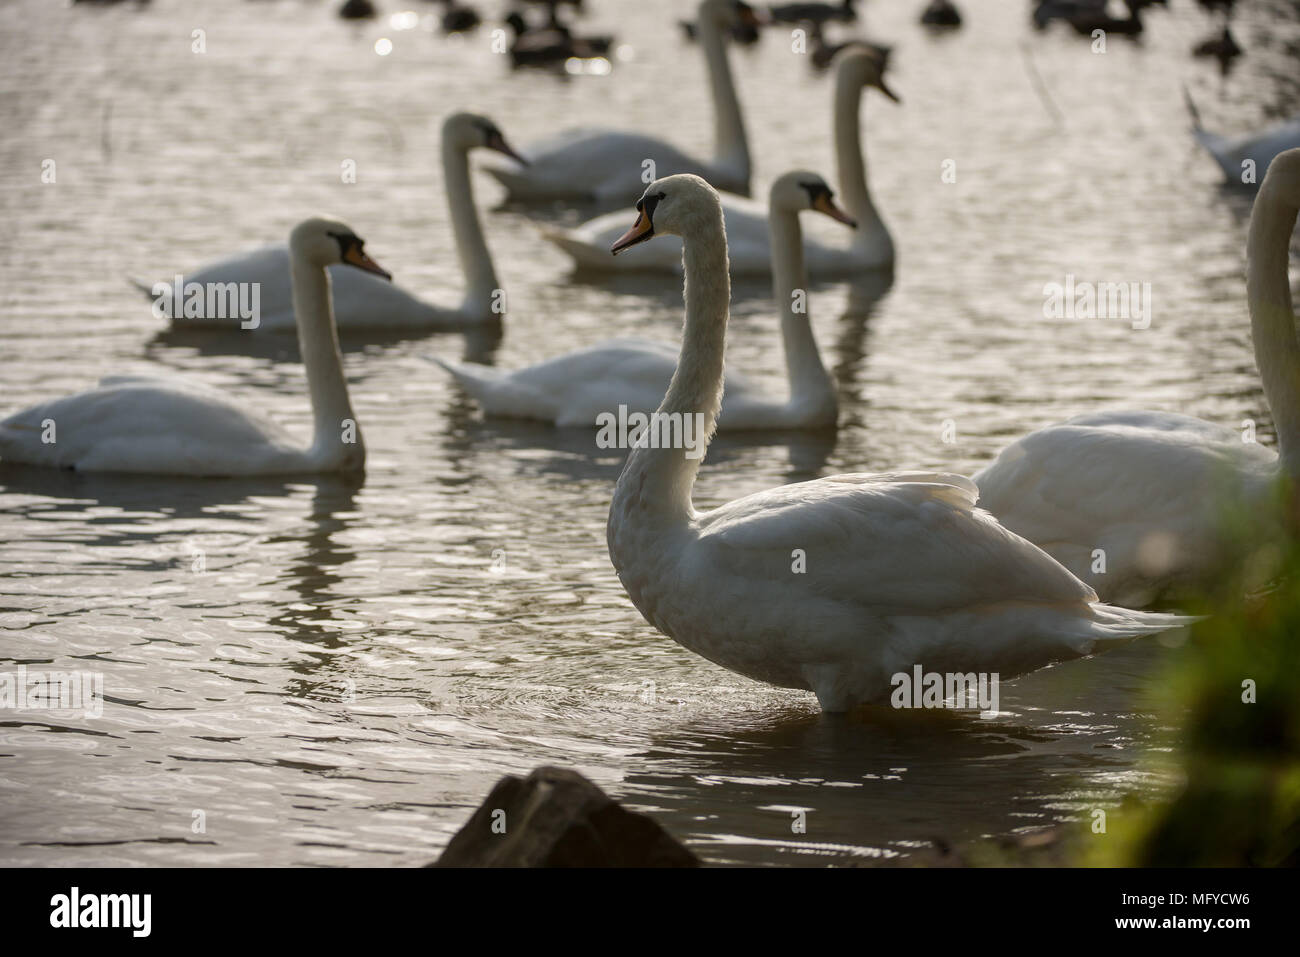 A group of swans swimming on a lake with evening Autumn light - Stock Image